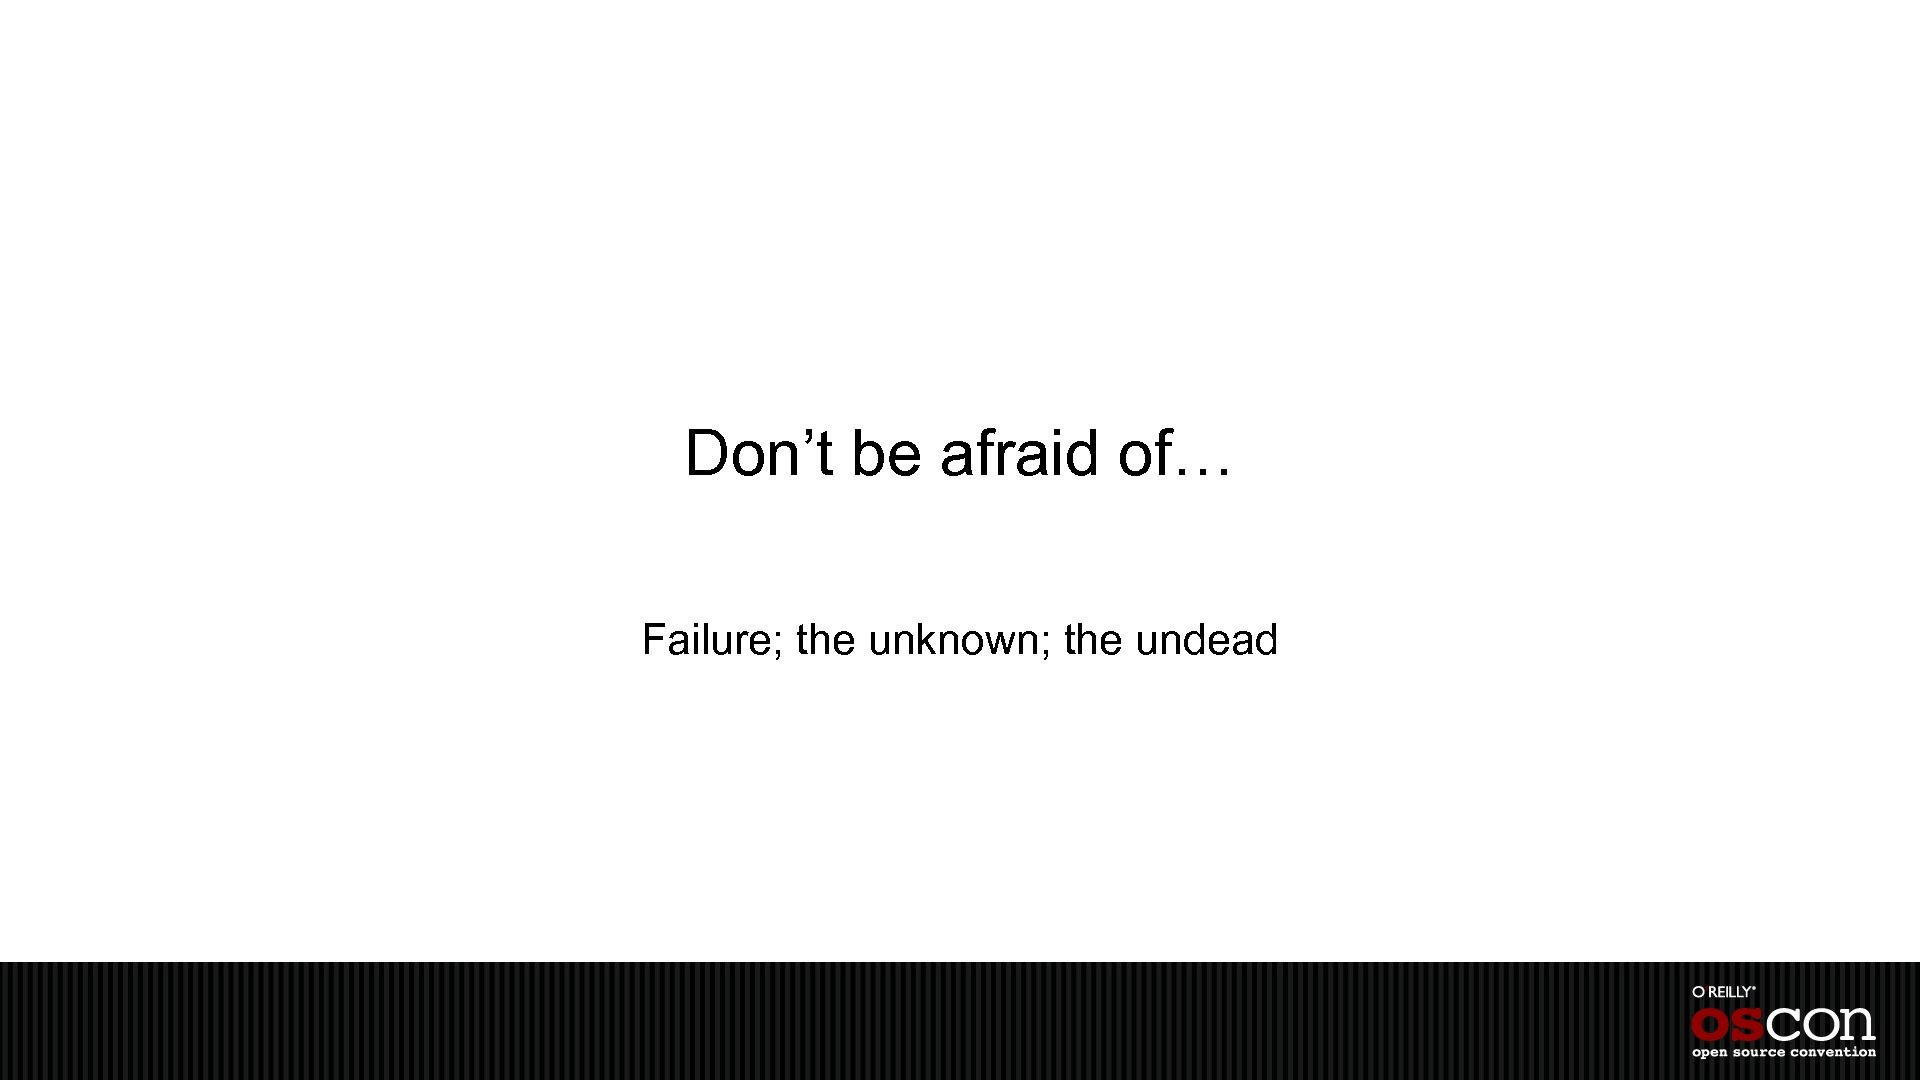 Don't be afraid of… Failure; the unknown; the undead